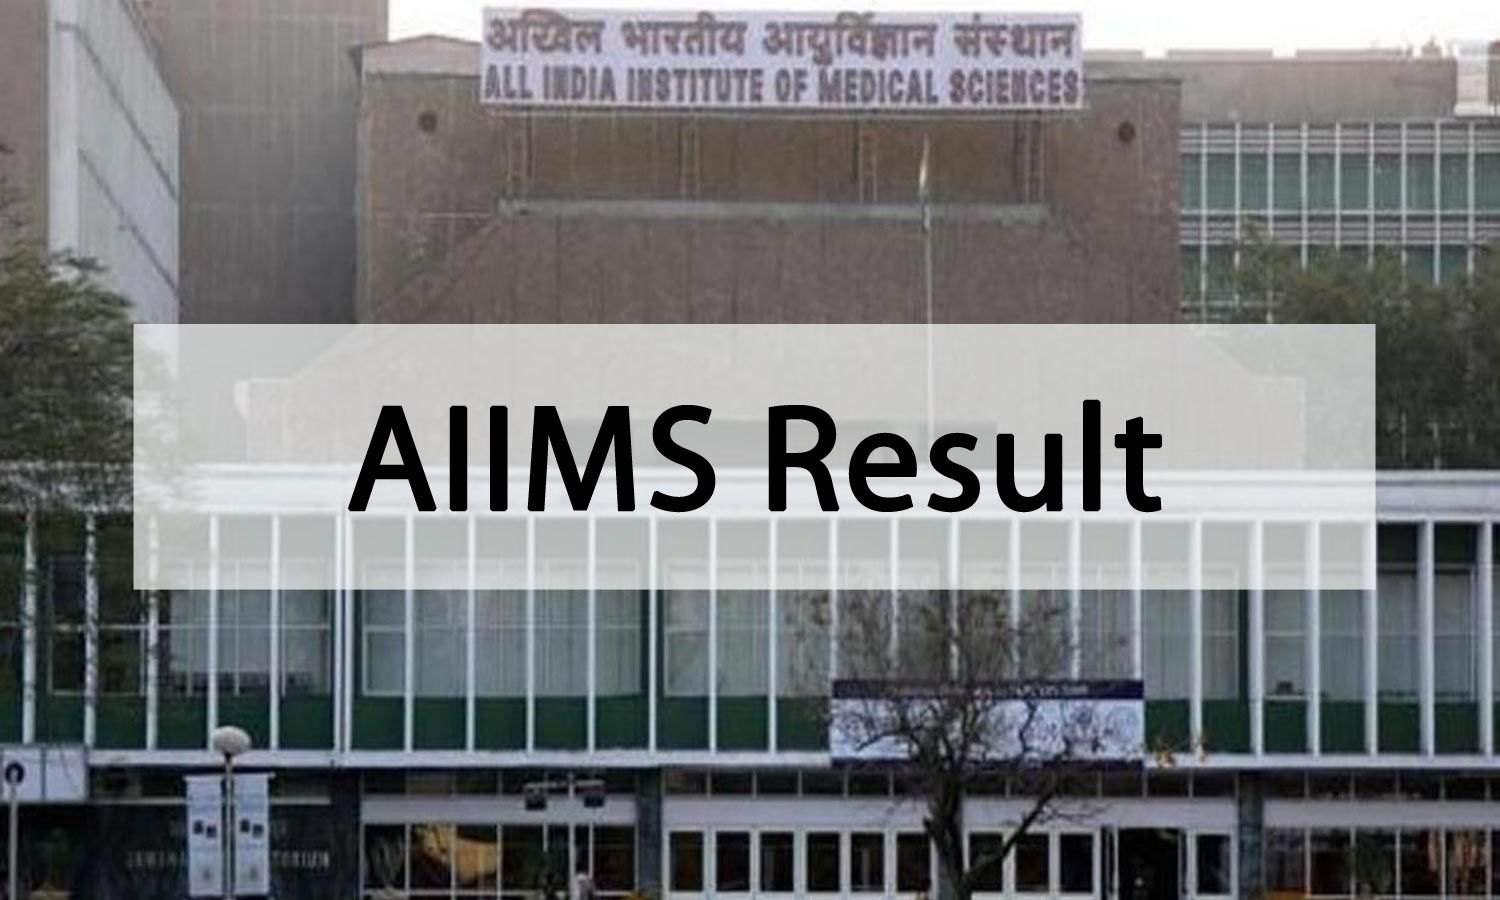 AIIMS publishes Part I Final Result of MD, MS, MDS Professional Exams June 2020